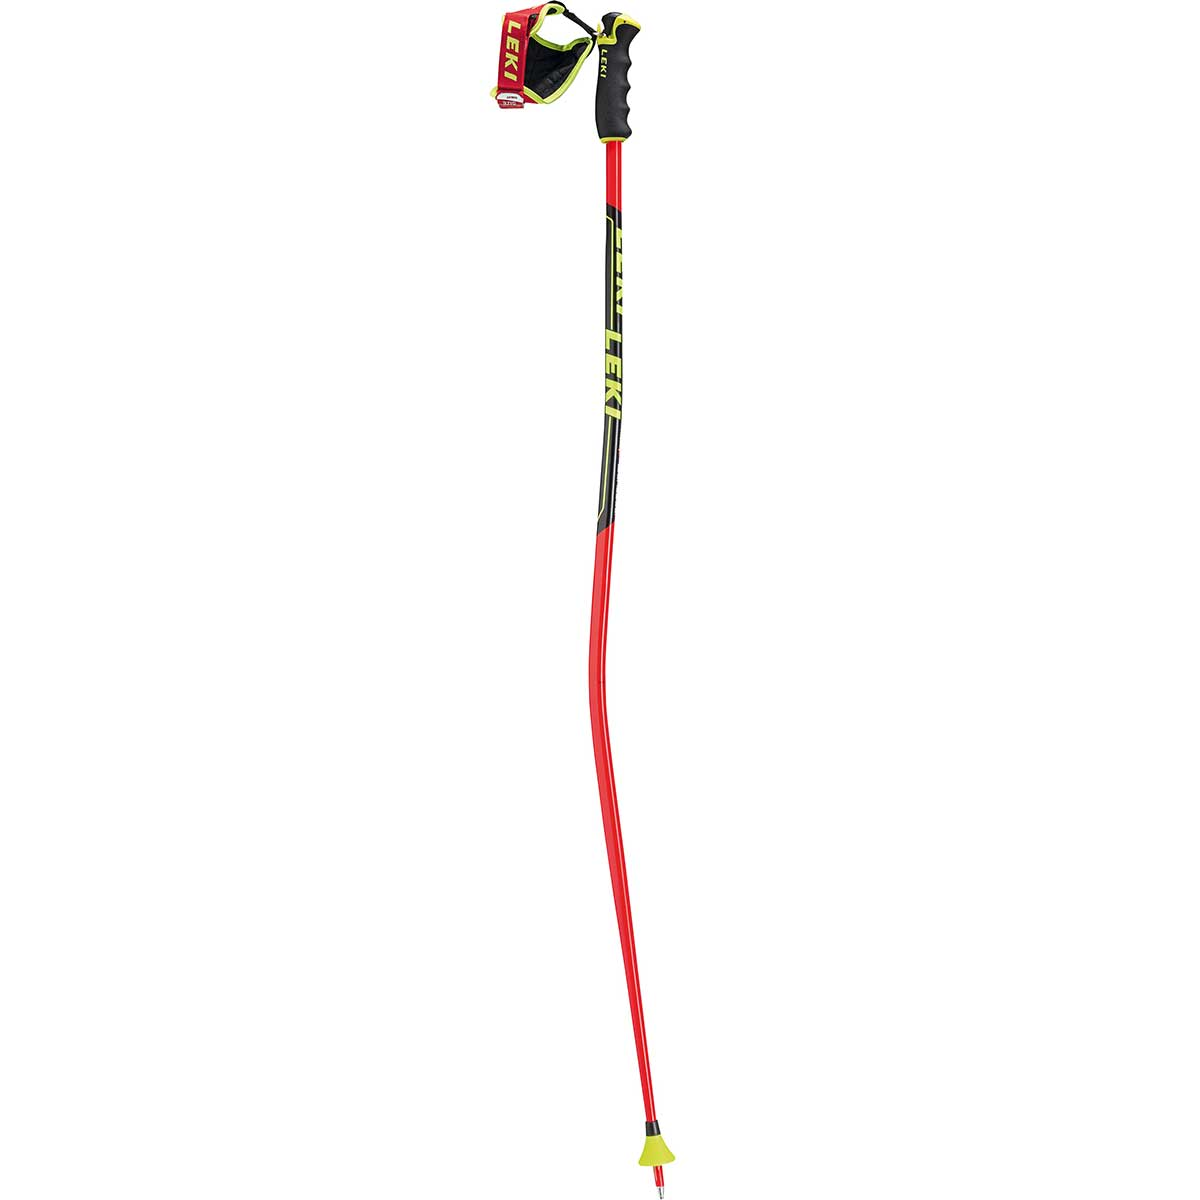 Leki Worldcup Racing GS Trigger Pole in red black yellow